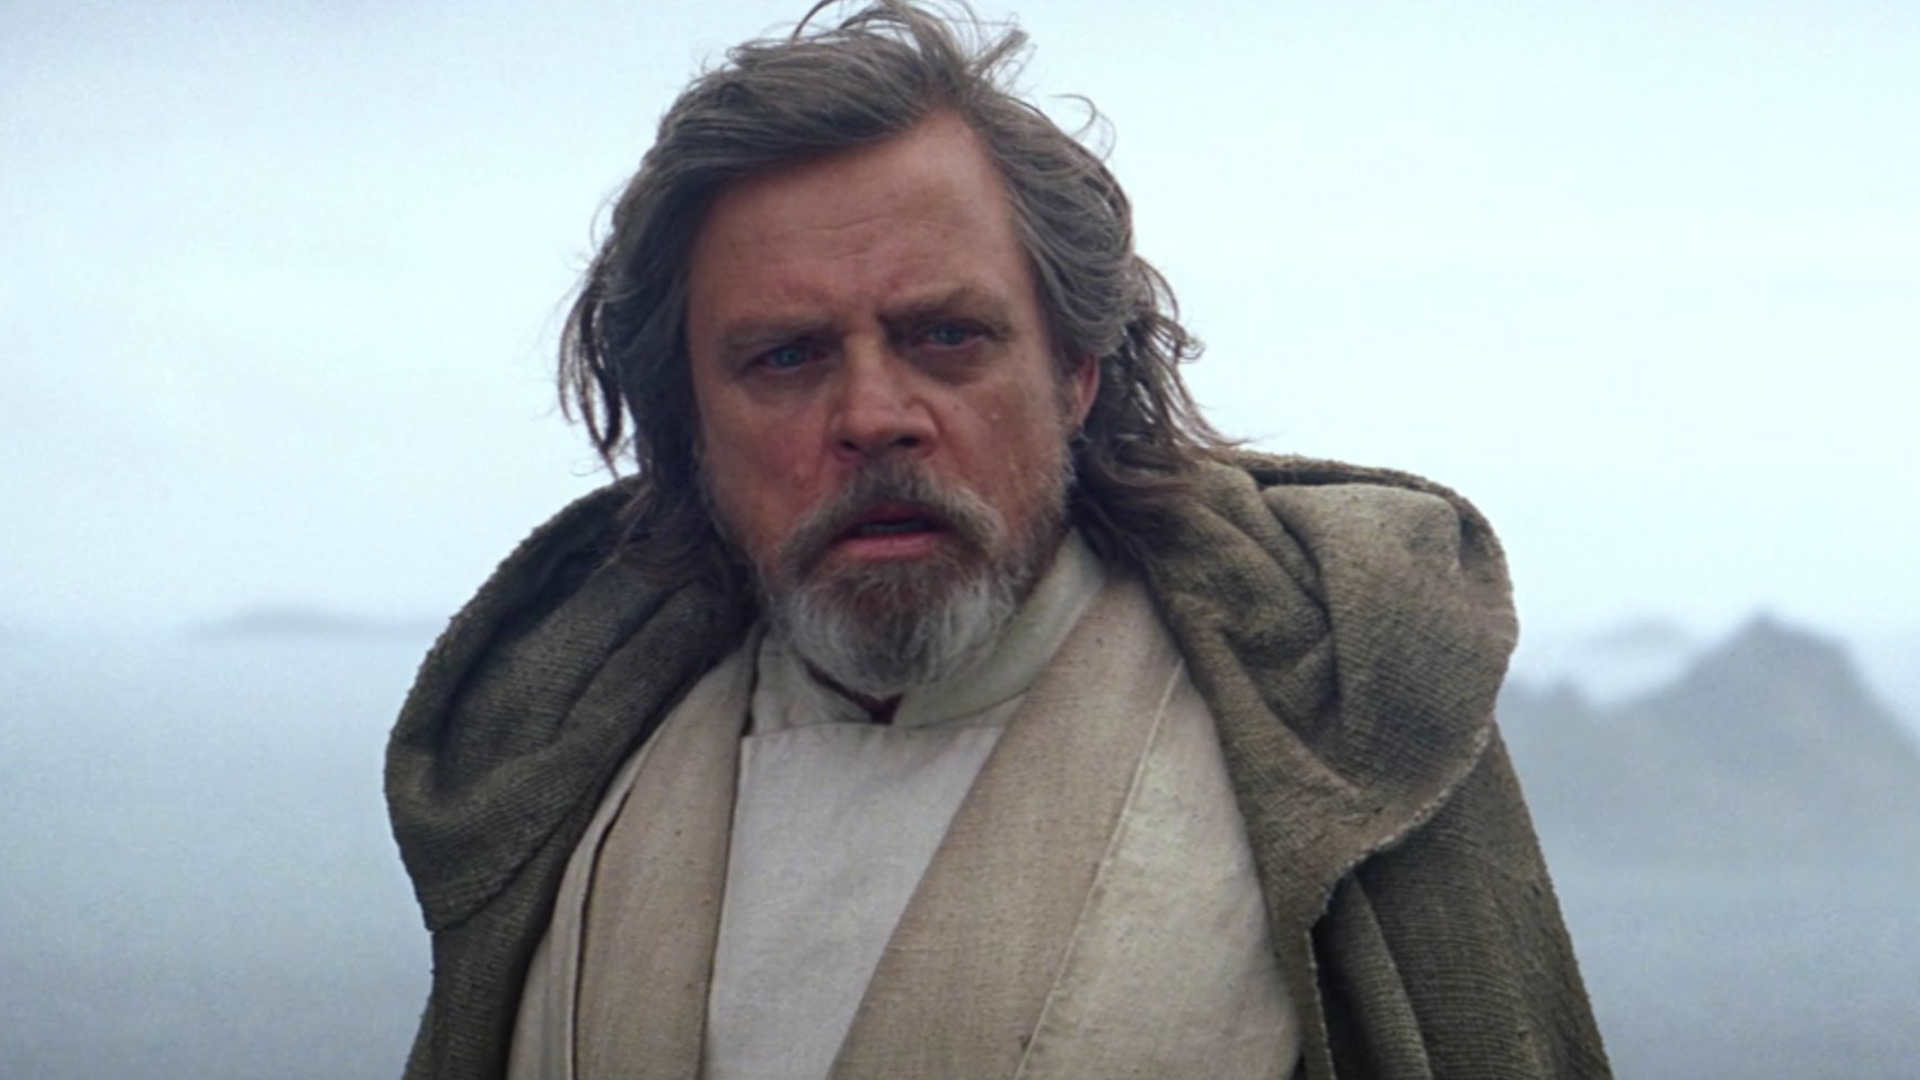 Star Wars: Episodio VIII, il film sarà incentrato su Luke Skywalker